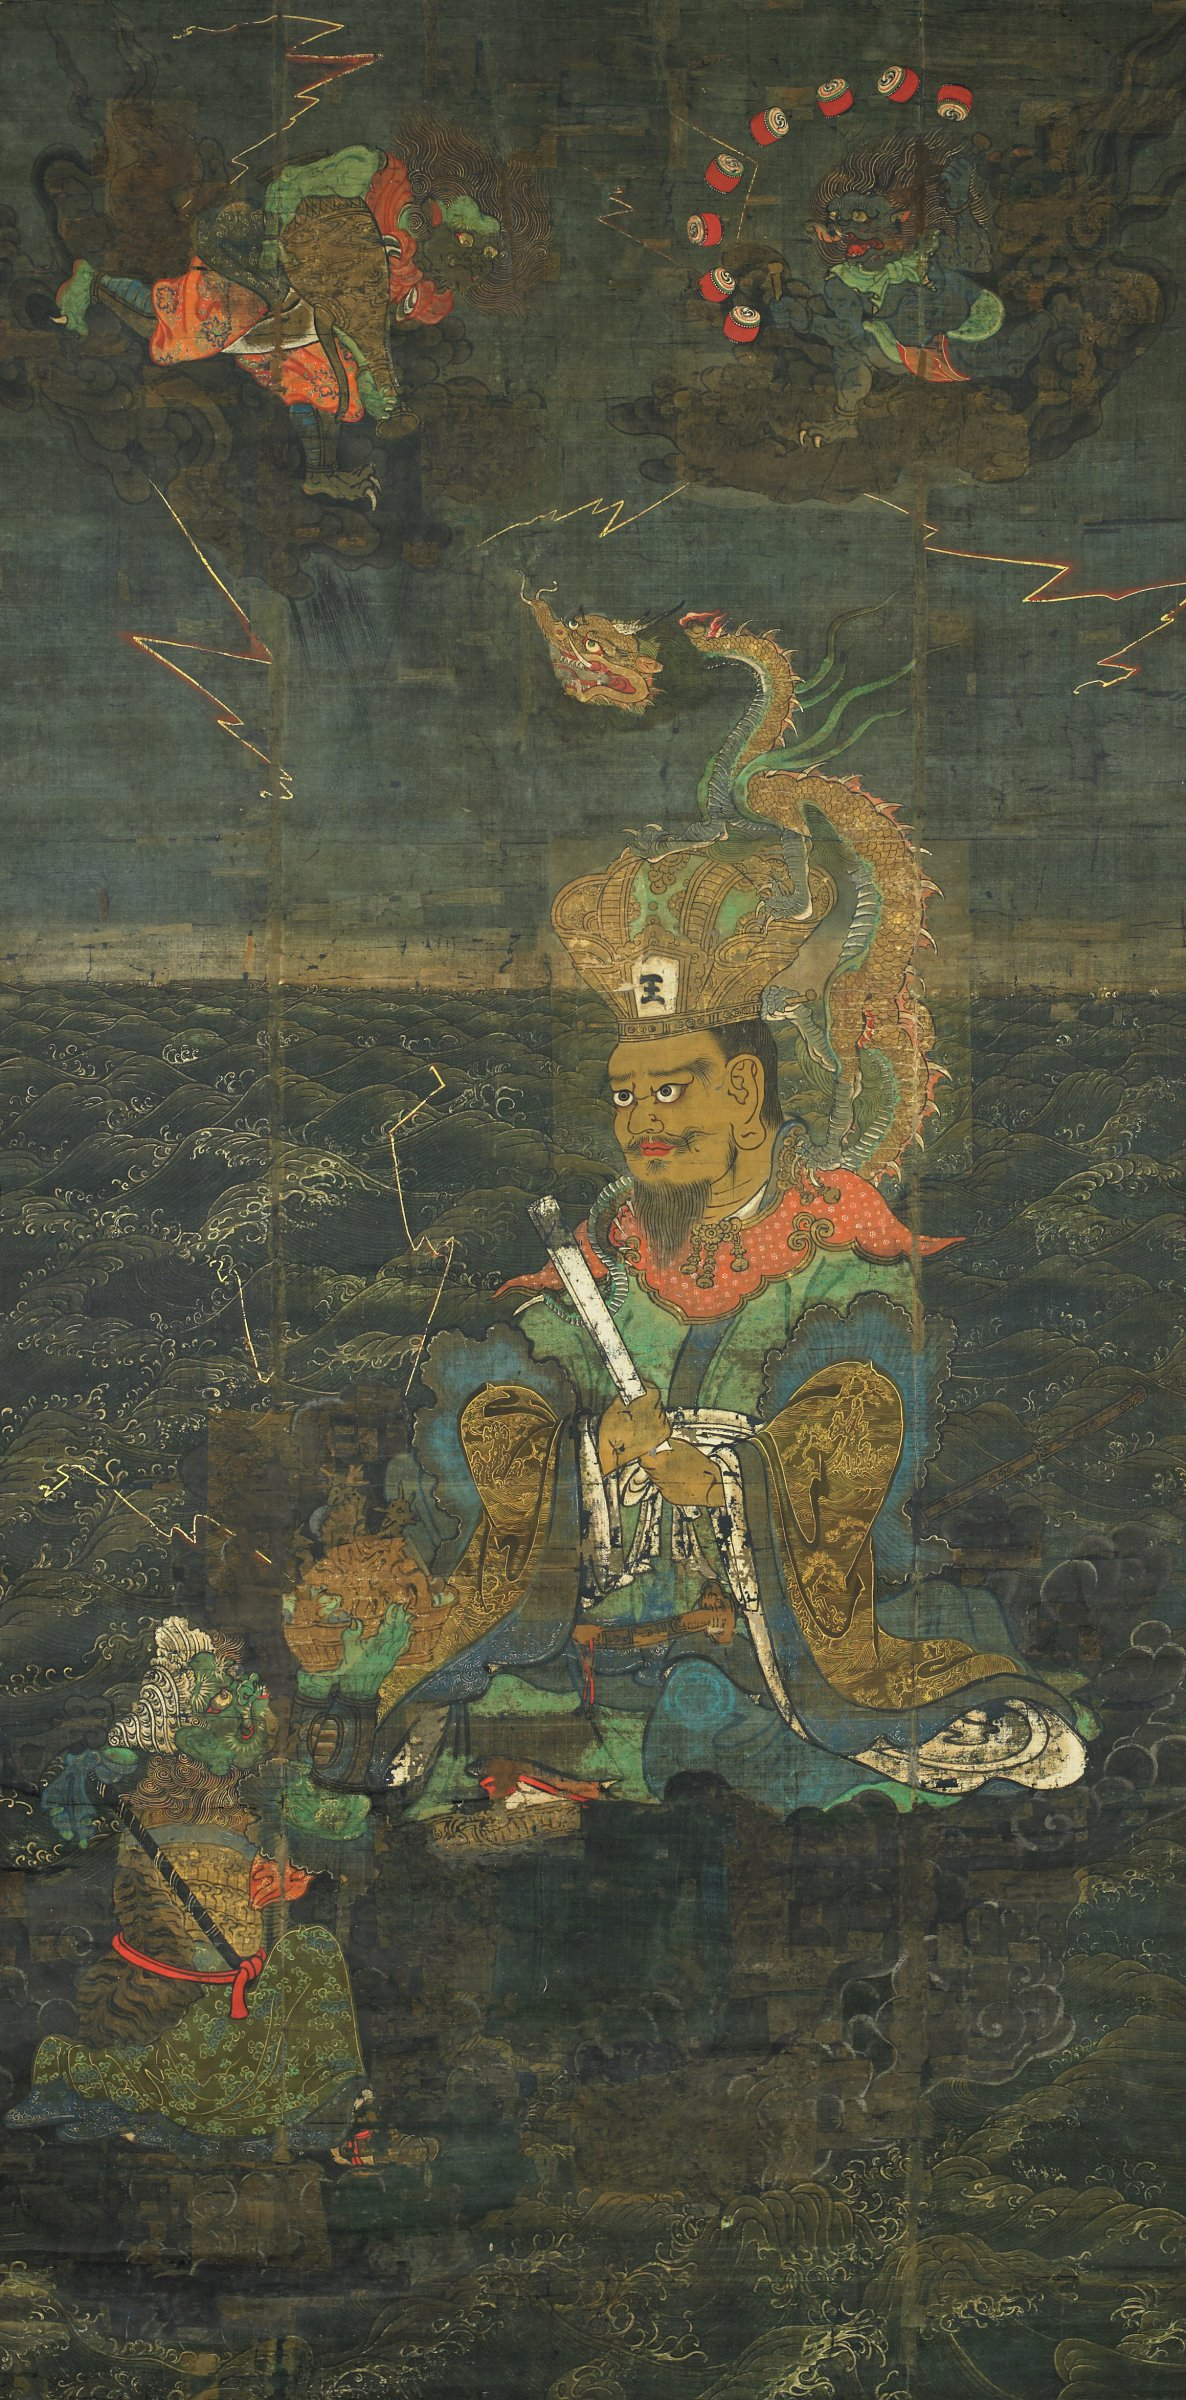 """Central figure in Chinese attire with the character """"wang"""" meaning King on his crown. Dragon perched on his shoulders seated on cloud amidst waves as lightening crackles around him.; surrounding him are three onies, two in the air representing wind and thunder, another kneeling before the king offering a miniature mountain with bull and bird shaped mountains; mounted in gold and purple silk."""